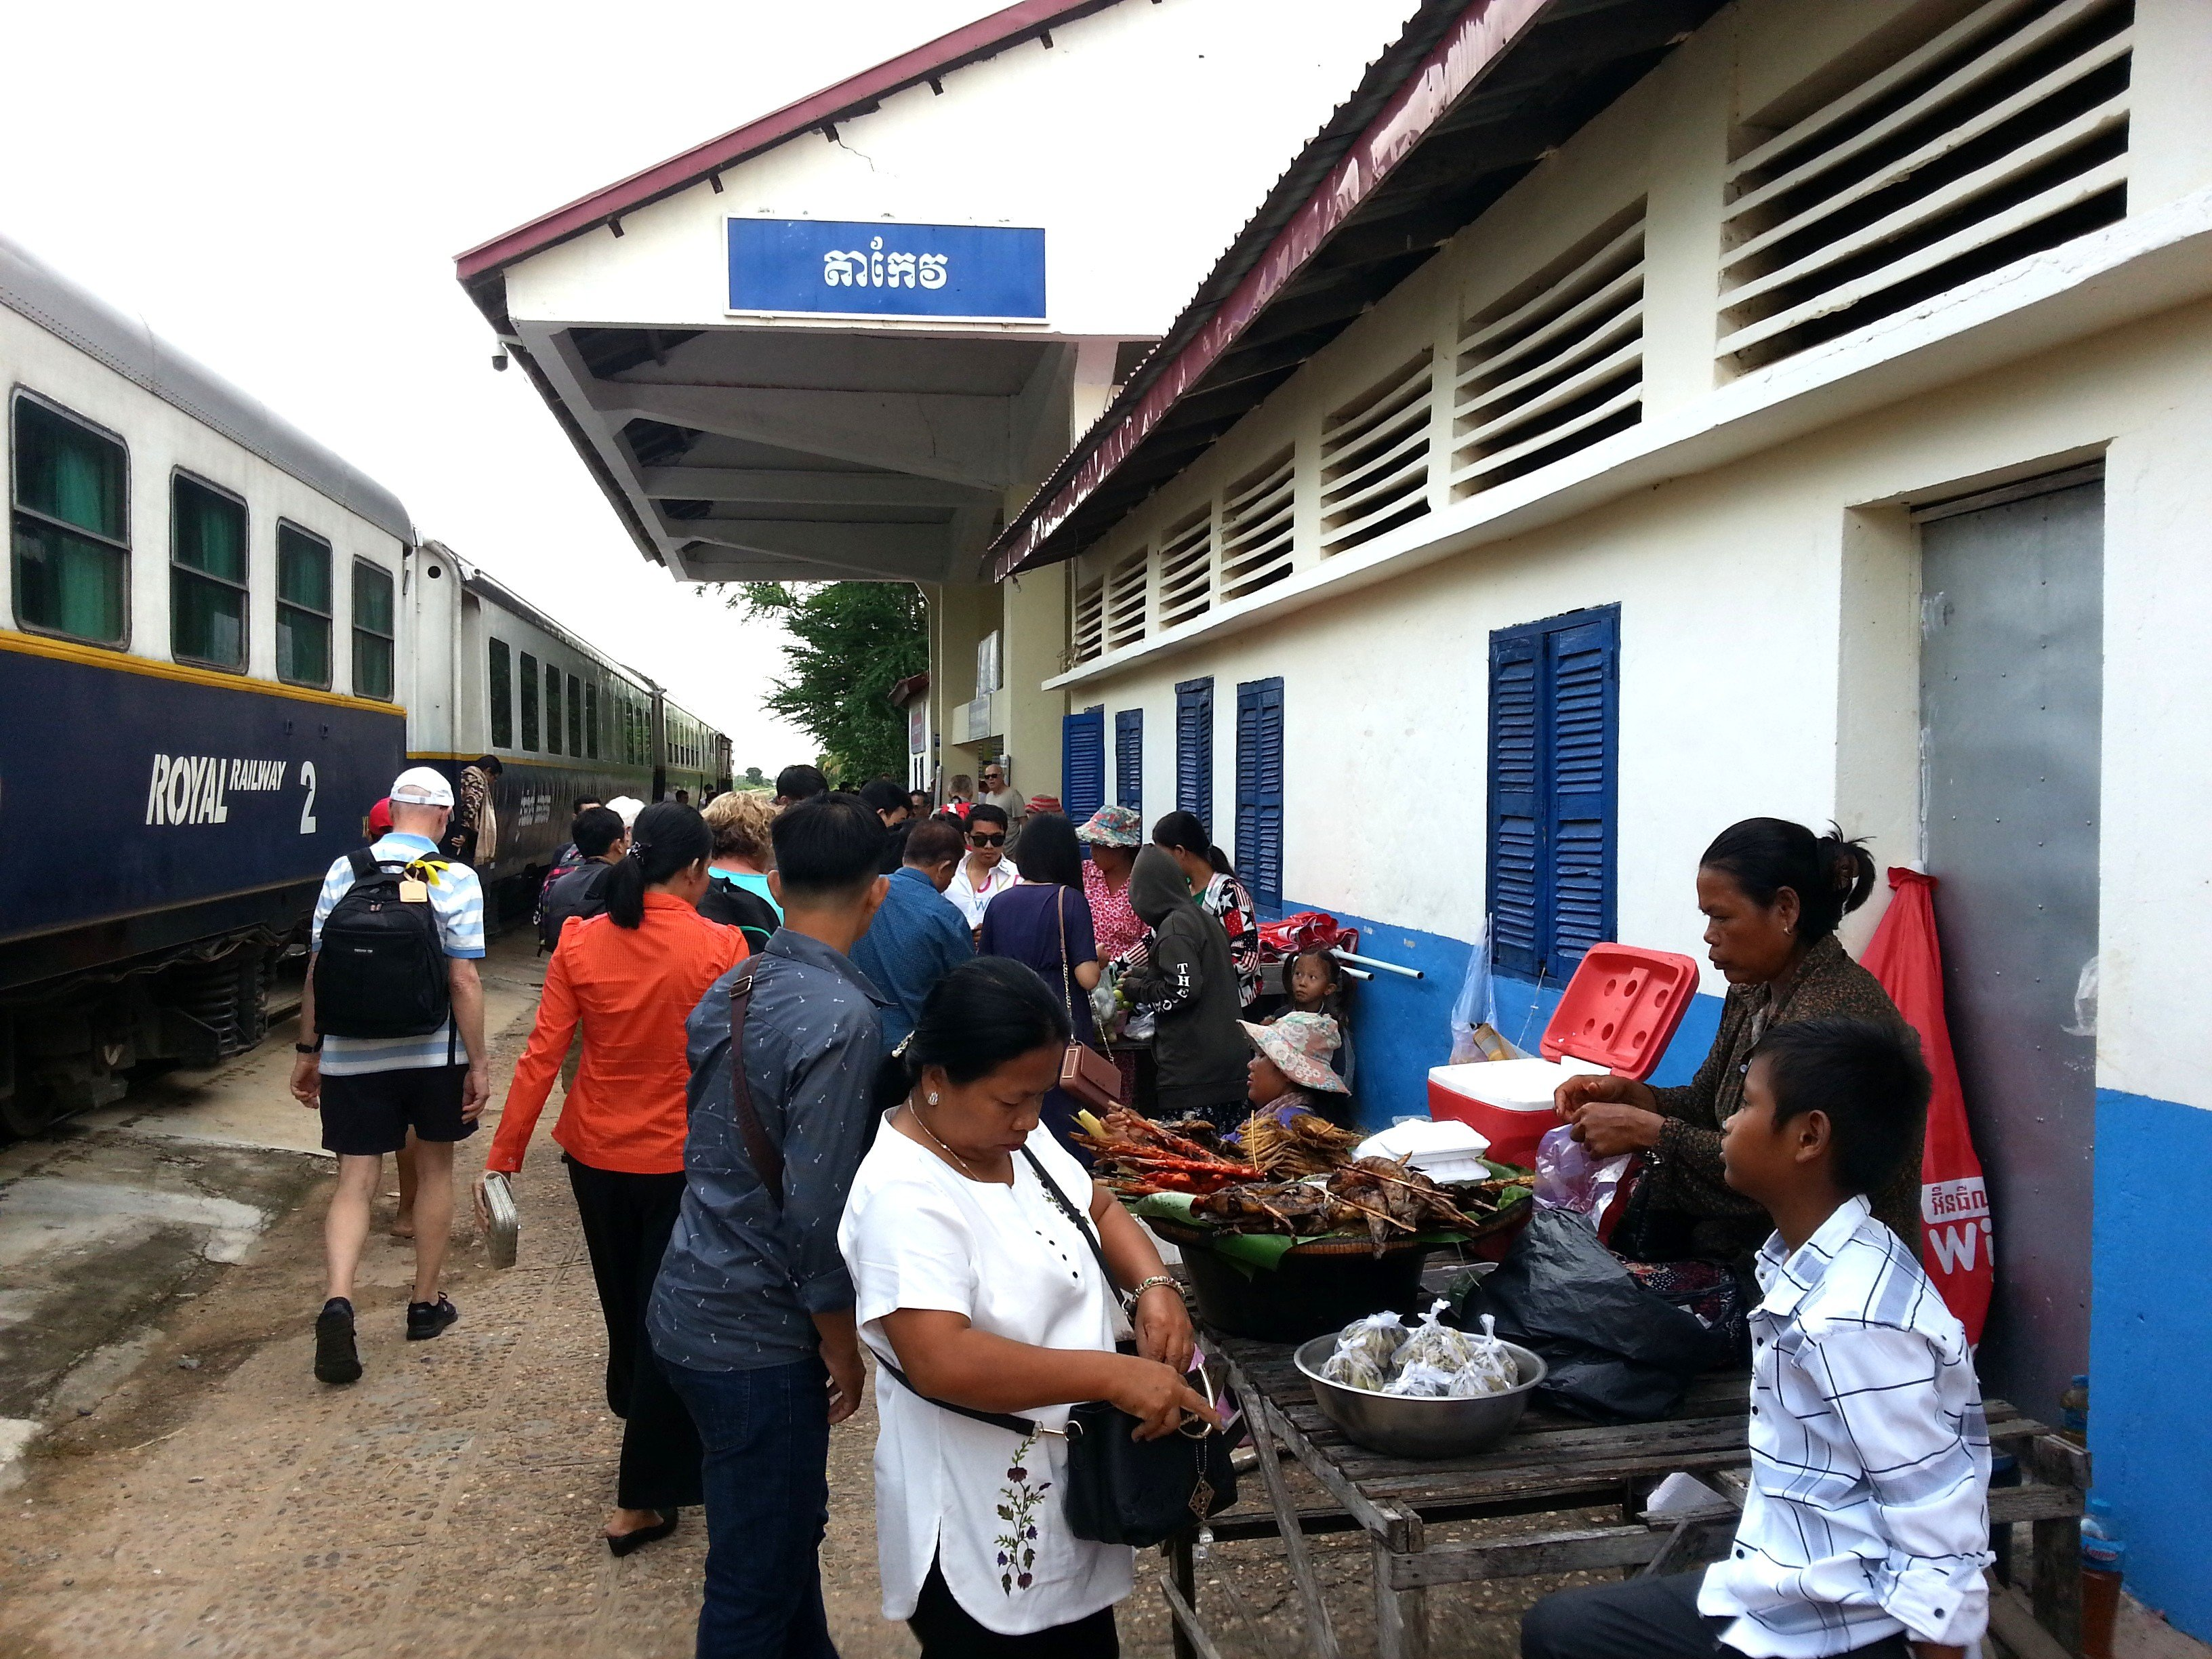 Food vendors at Takeo Train Station